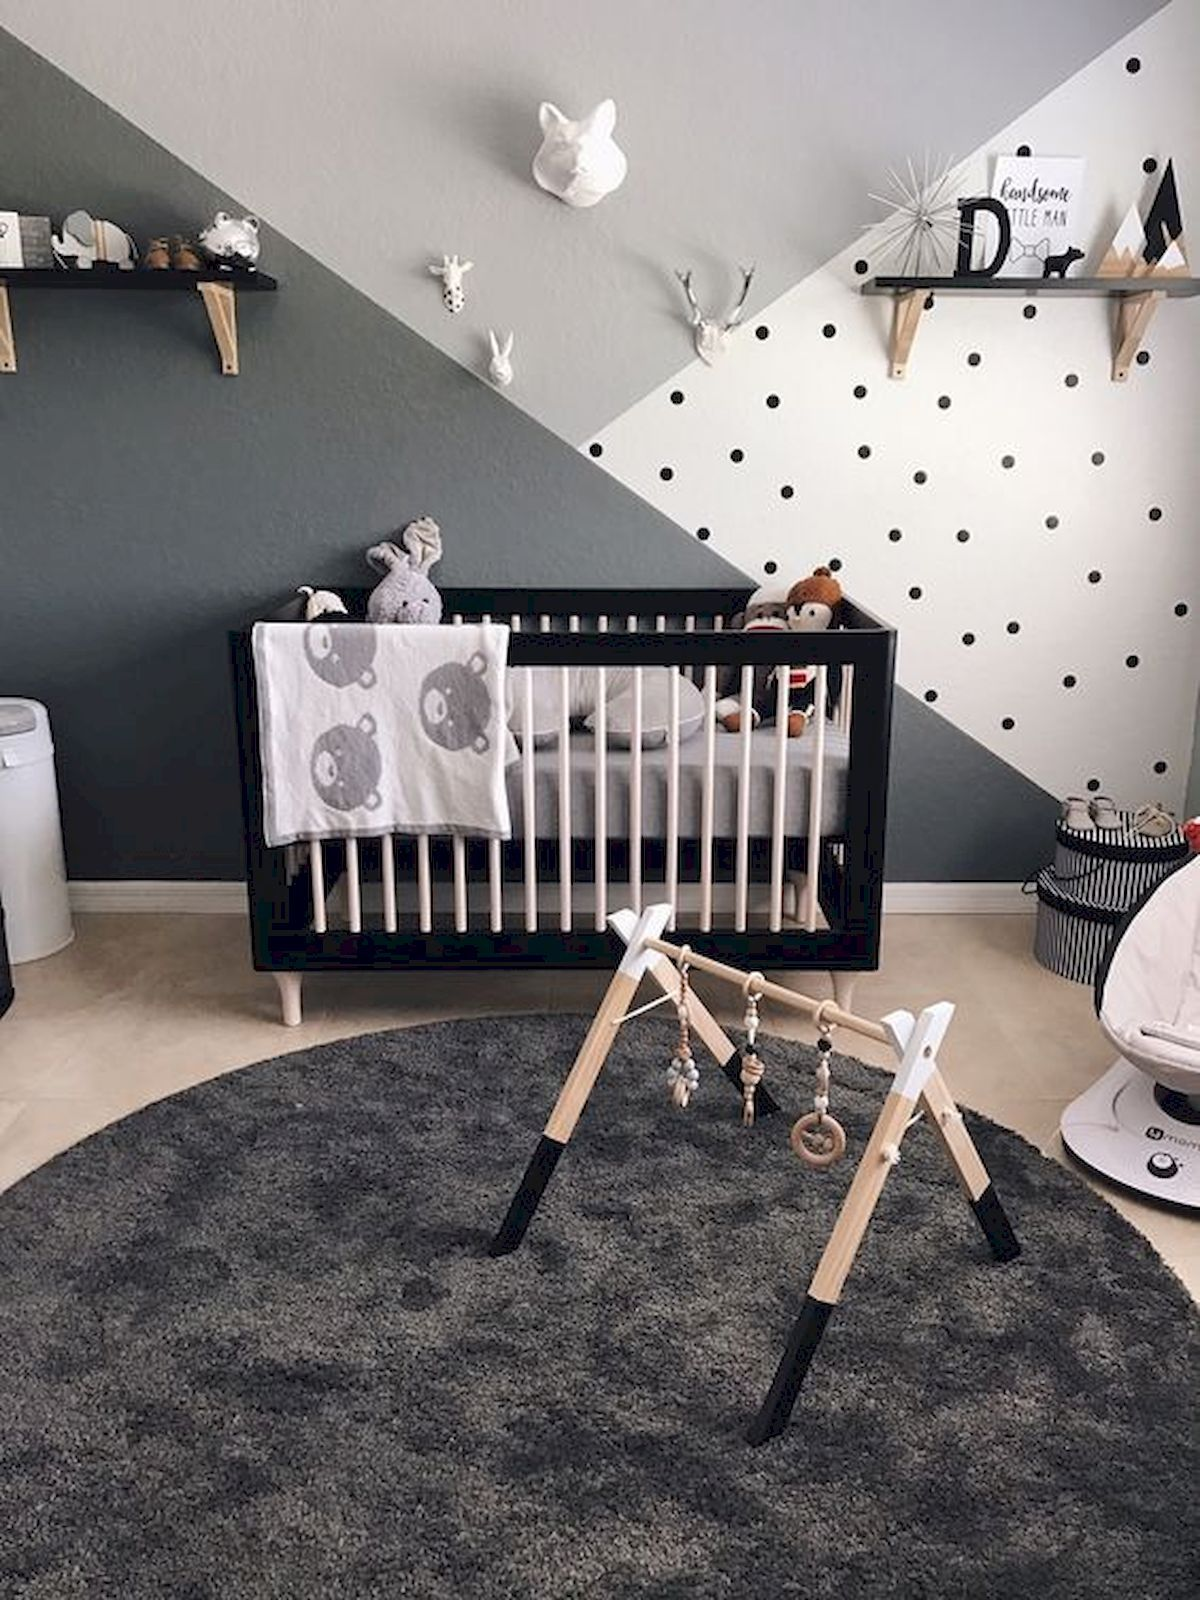 35 Best Baby Room Decor Ideas Baby Room Colors Baby Room Decor